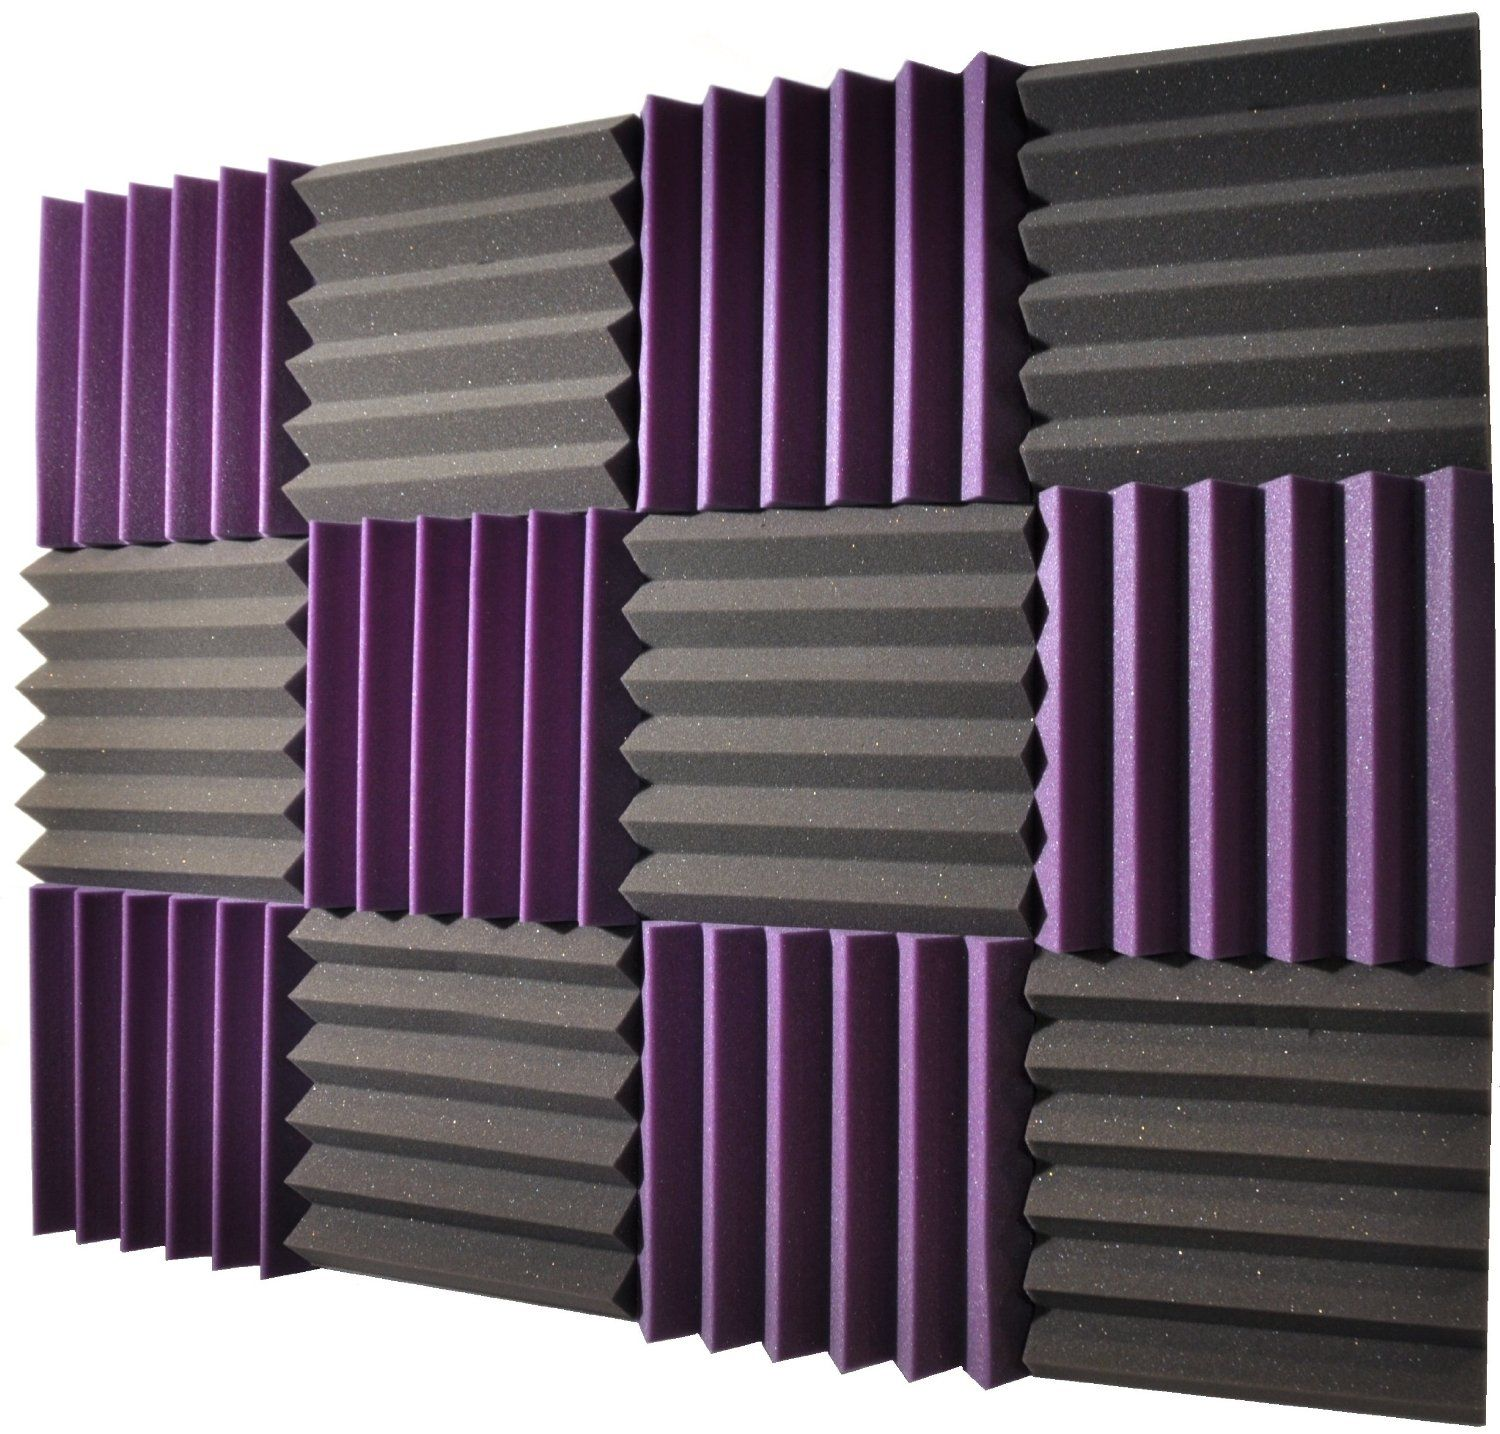 Pack Royal Purple Charcoal Acoustic Wedge Soundproofing Studio Foam Tiles Soundproof Offers Specially Made To Withstand Elements Like